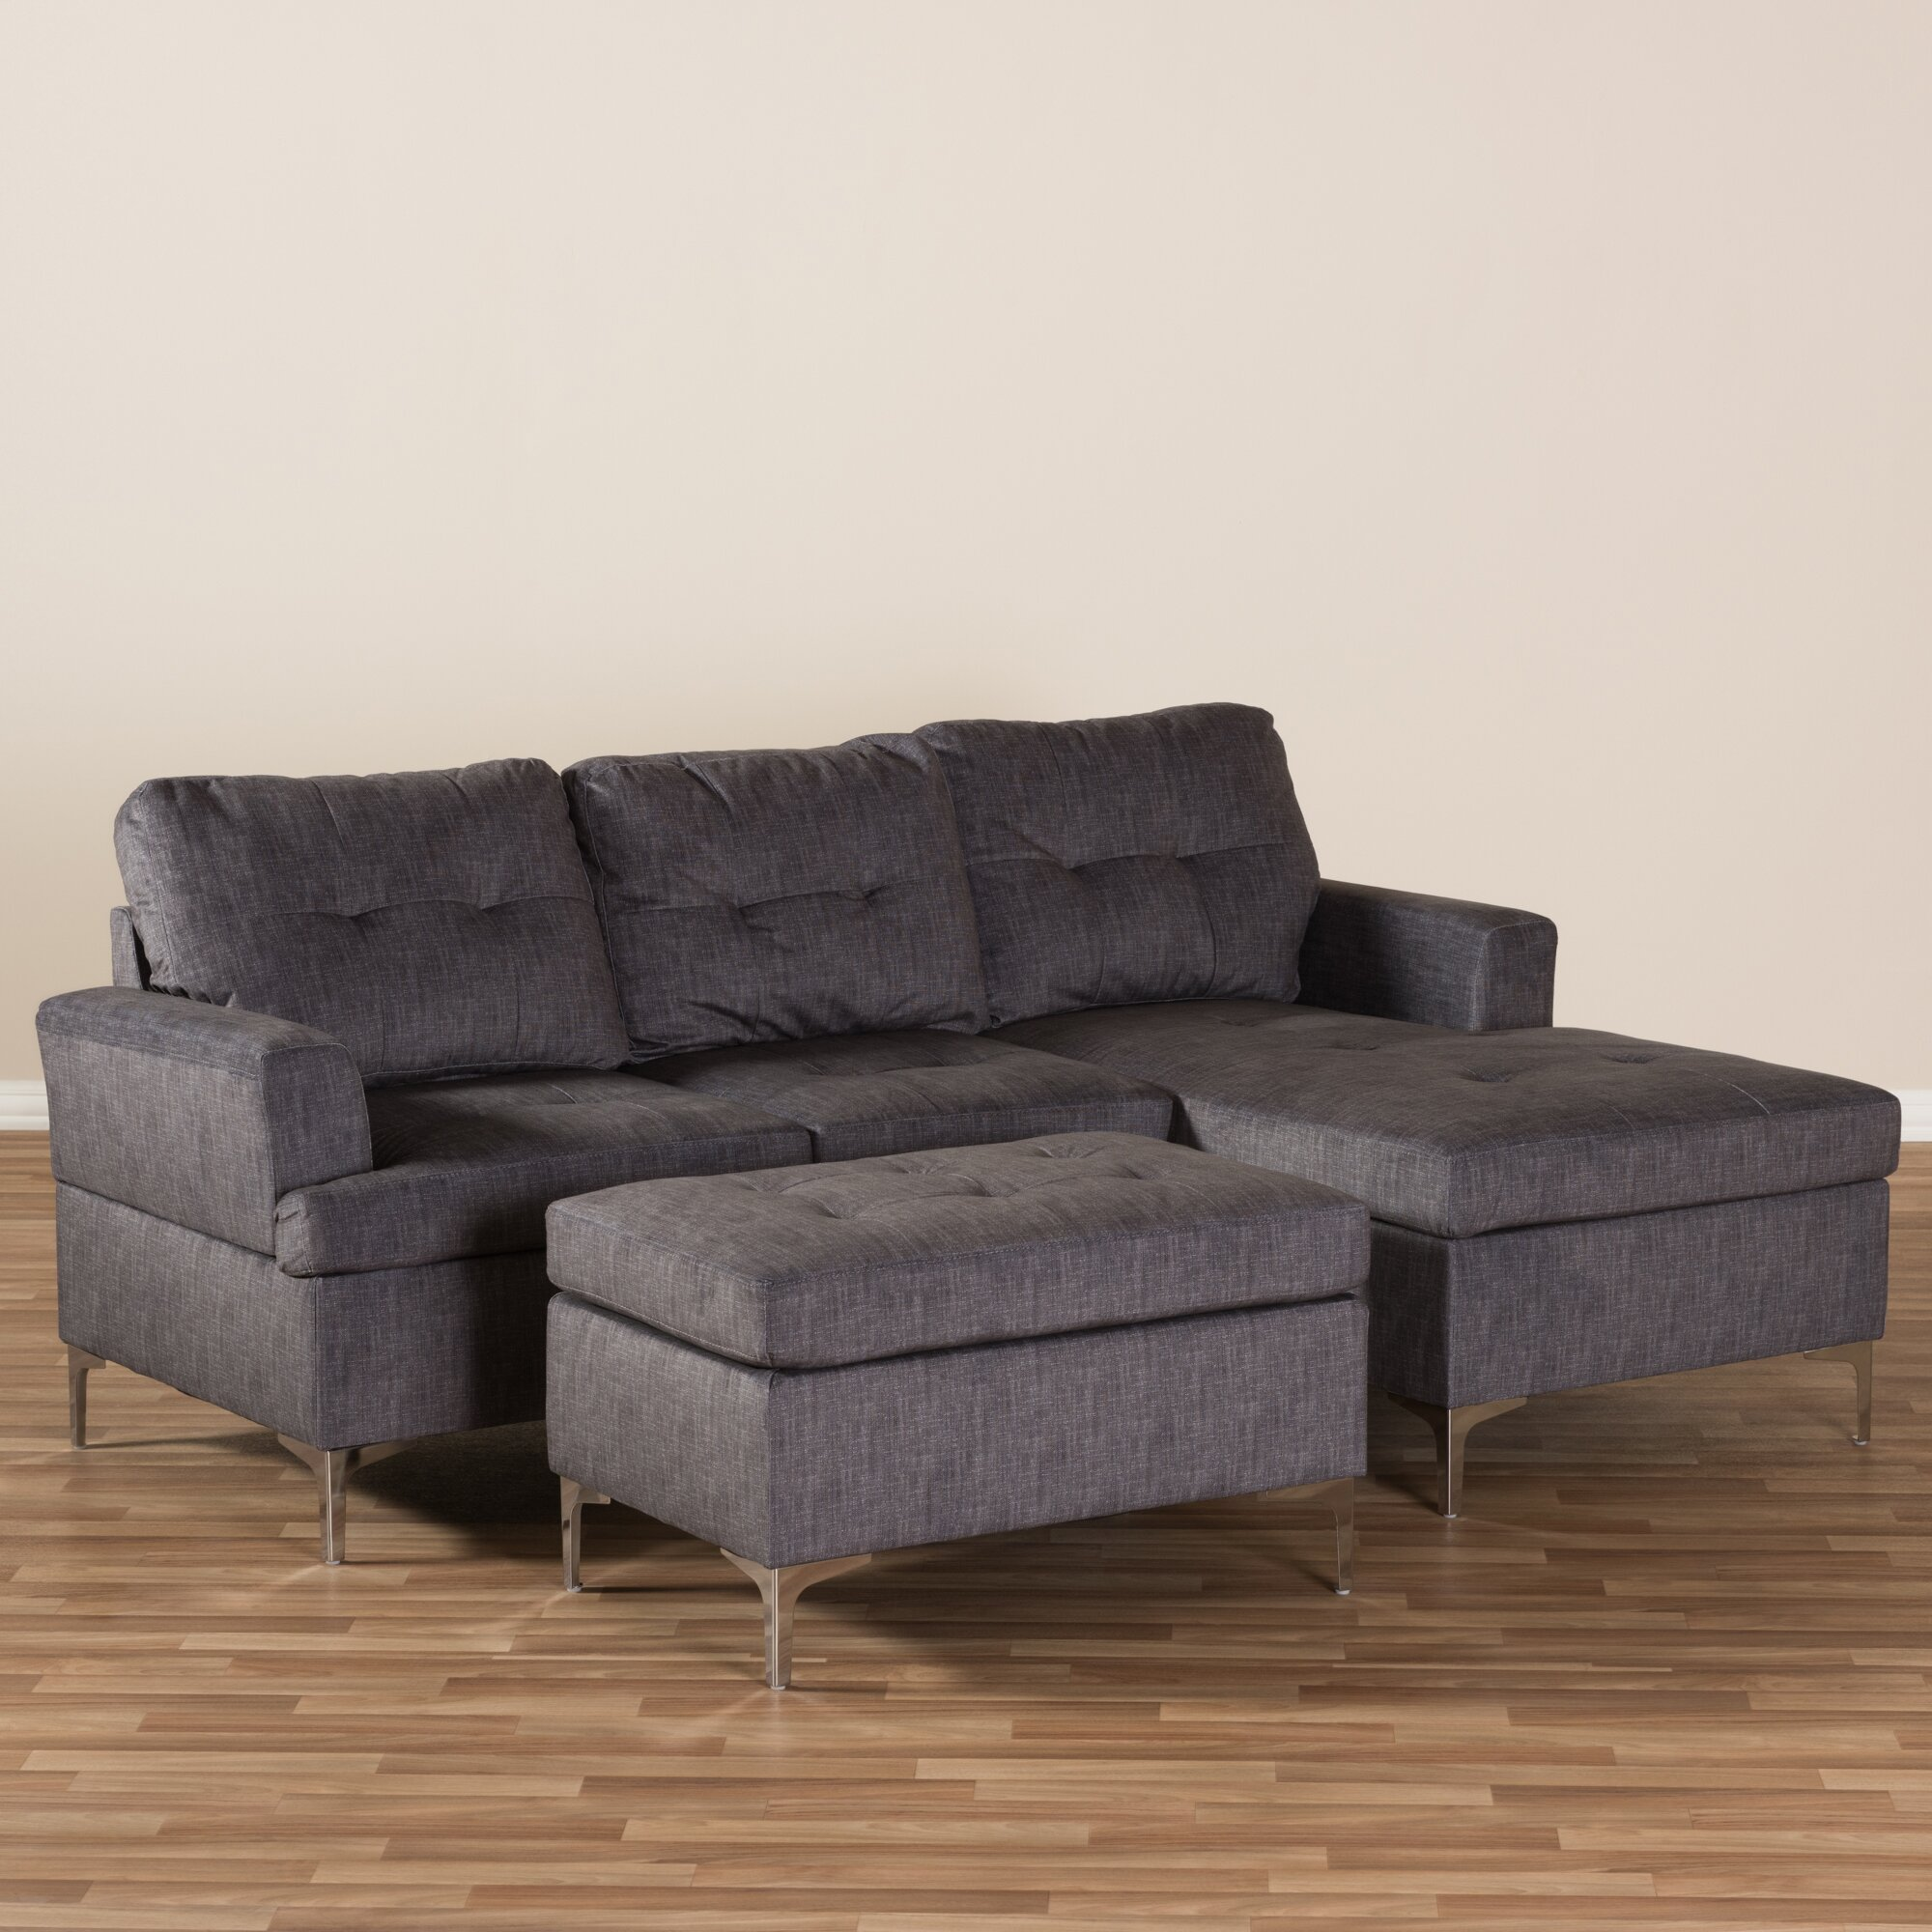 Discount Large Sectional Sofas: Wholesale Interiors Baxton Studio Rigina Sectional